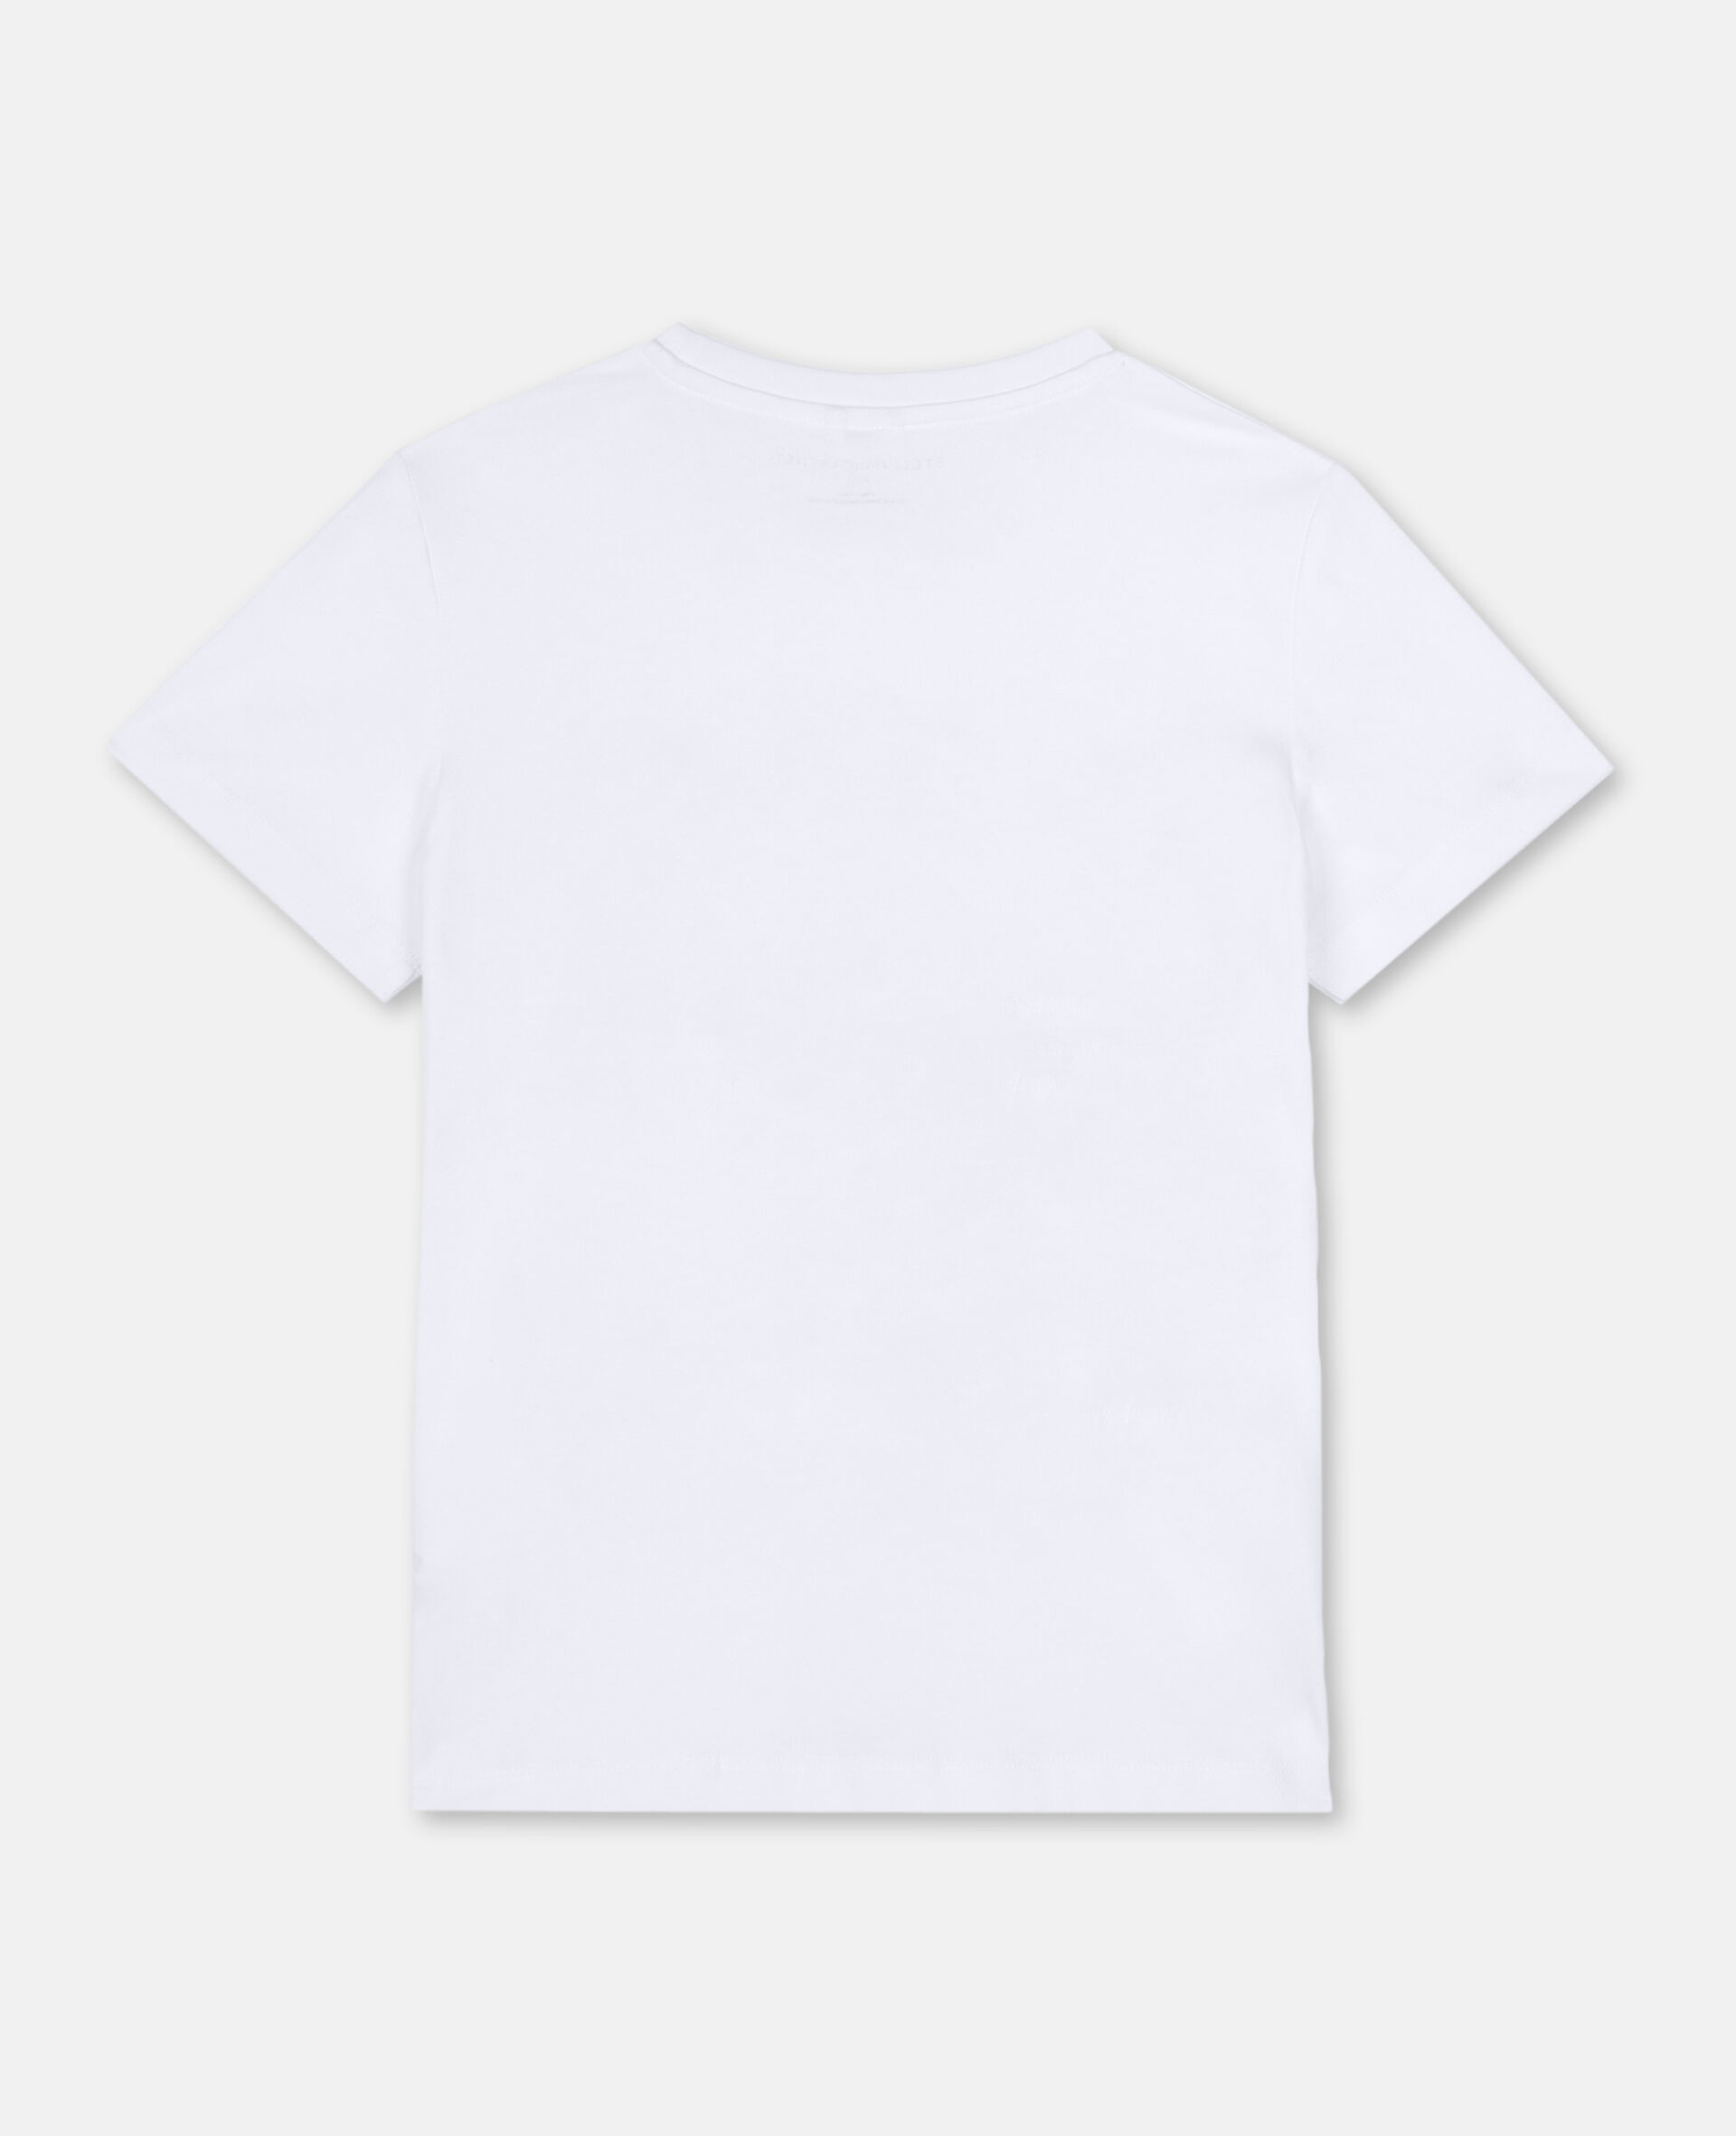 Trompe-L'Oeil Pirate Cotton T-shirt -White-large image number 3